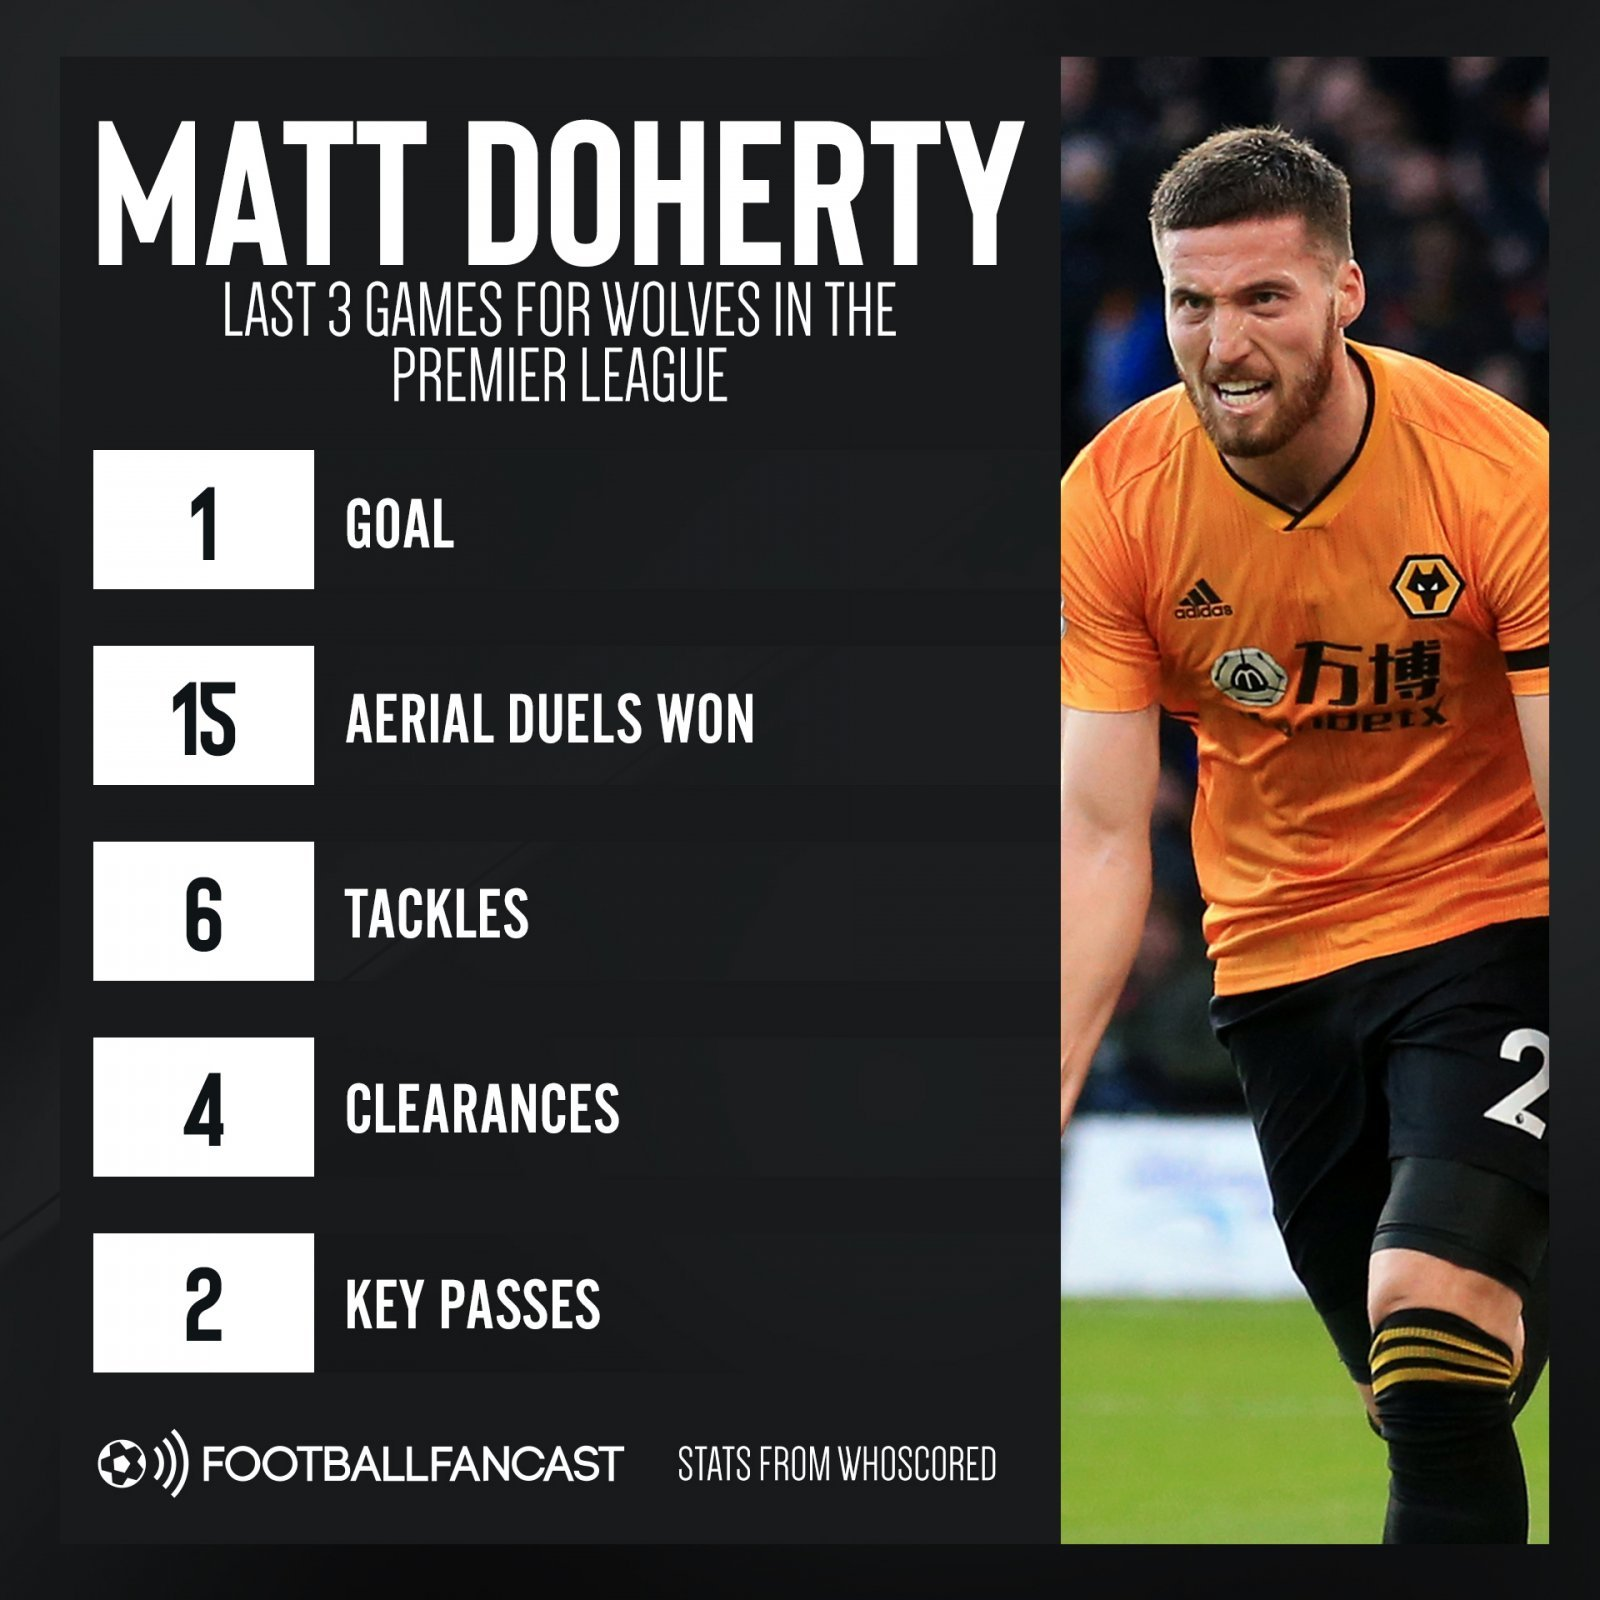 Matt Doherty Premier League stats